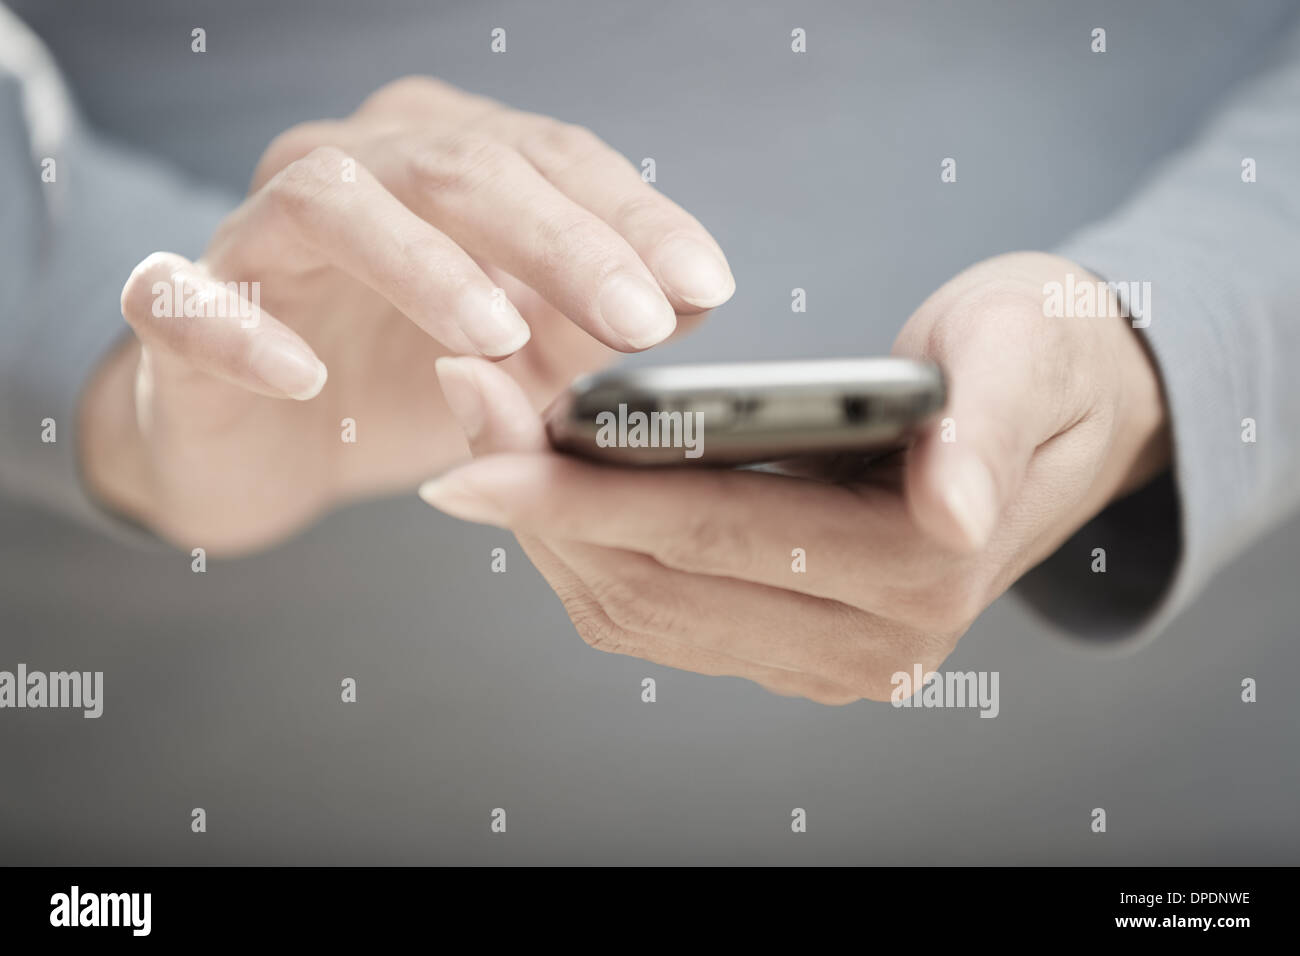 Human hands sending SMS via cell phone - Stock Image